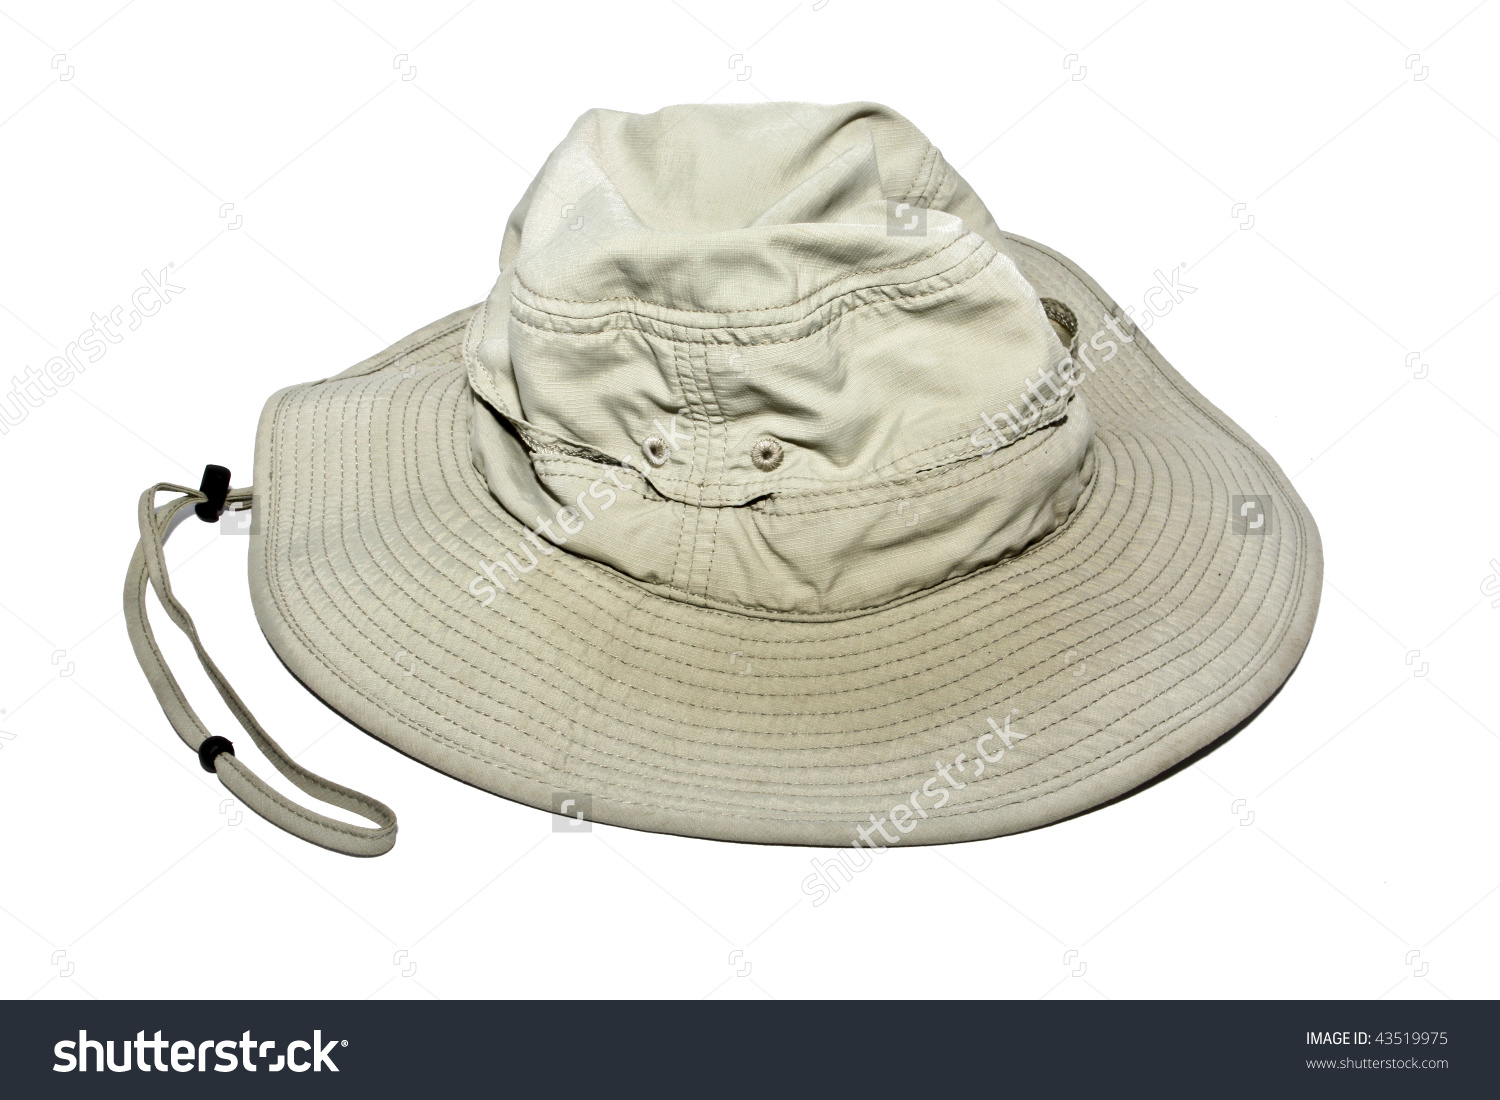 Floppy Outdoors Hiking Hat Isolated On A White Background Stock.